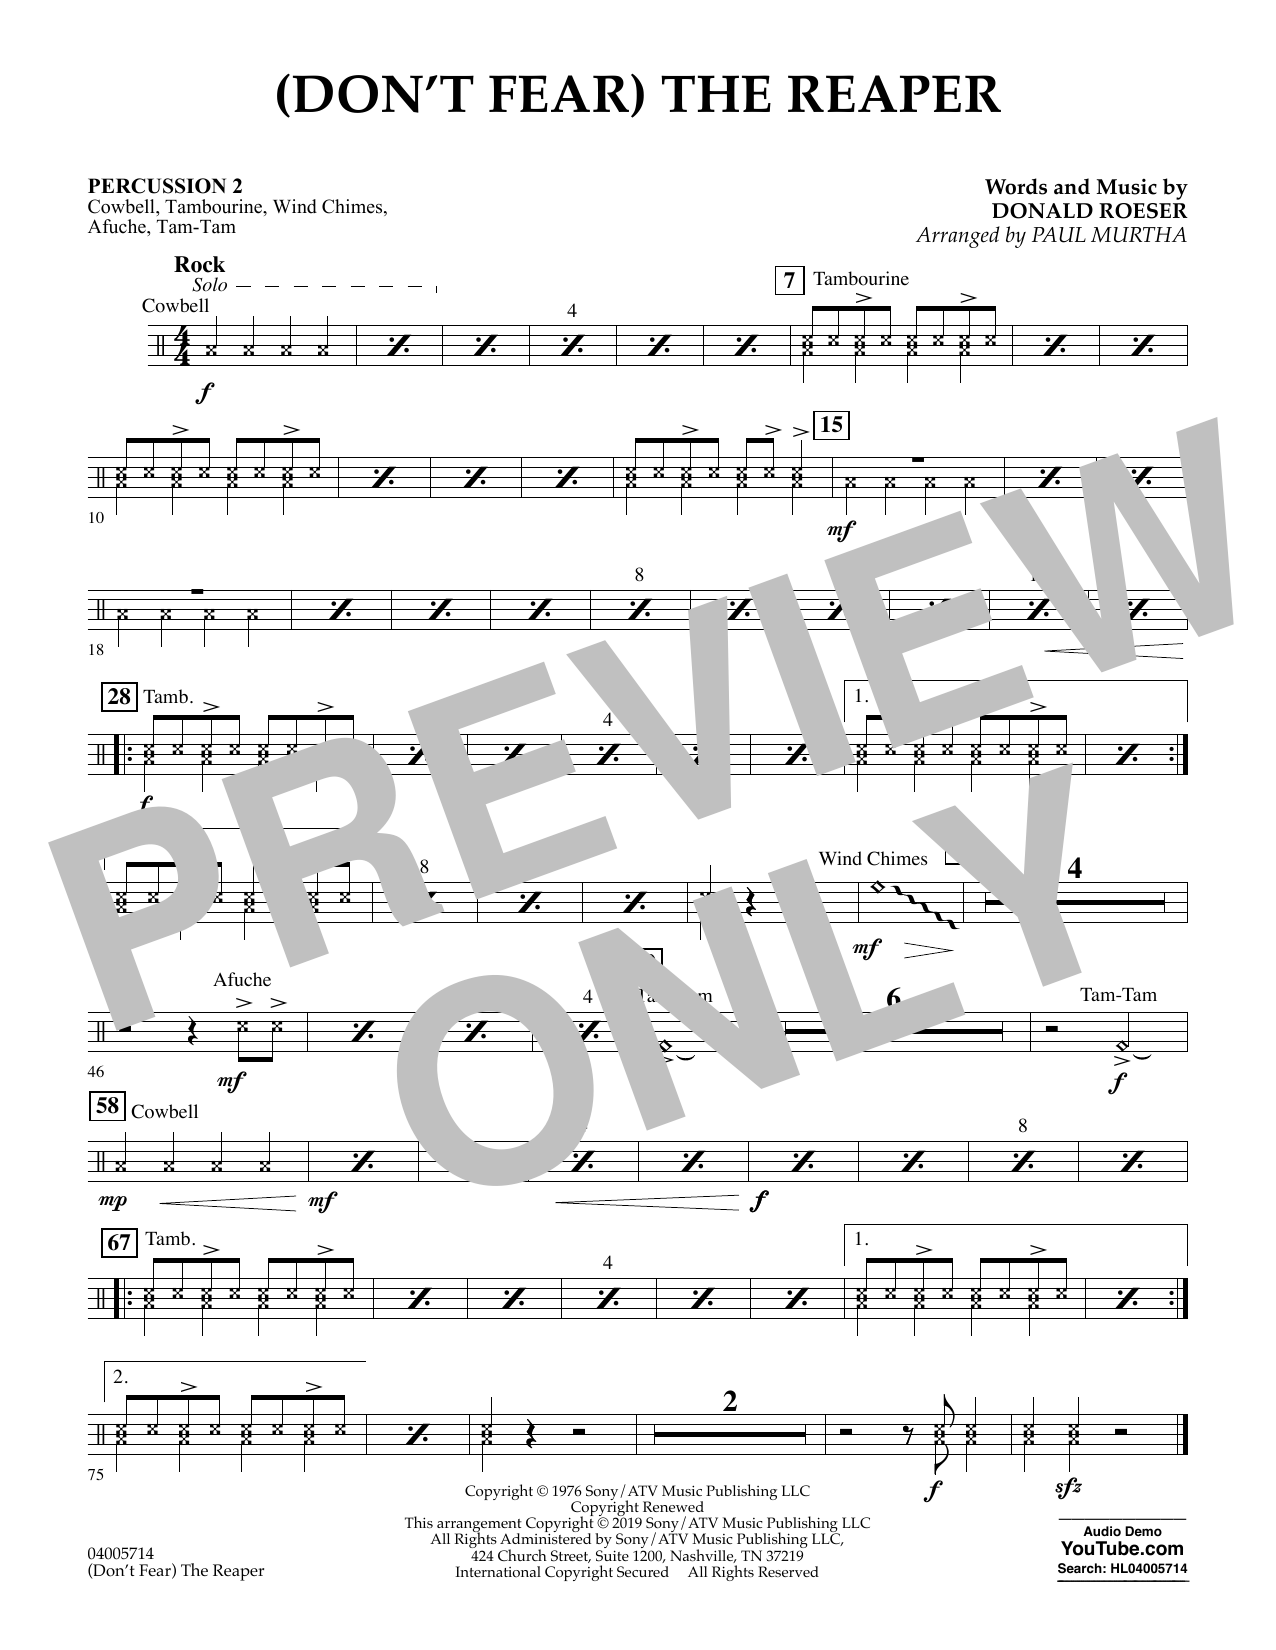 (Don't Fear) The Reaper (arr. Paul Murtha) - Percussion 2 (Concert Band)